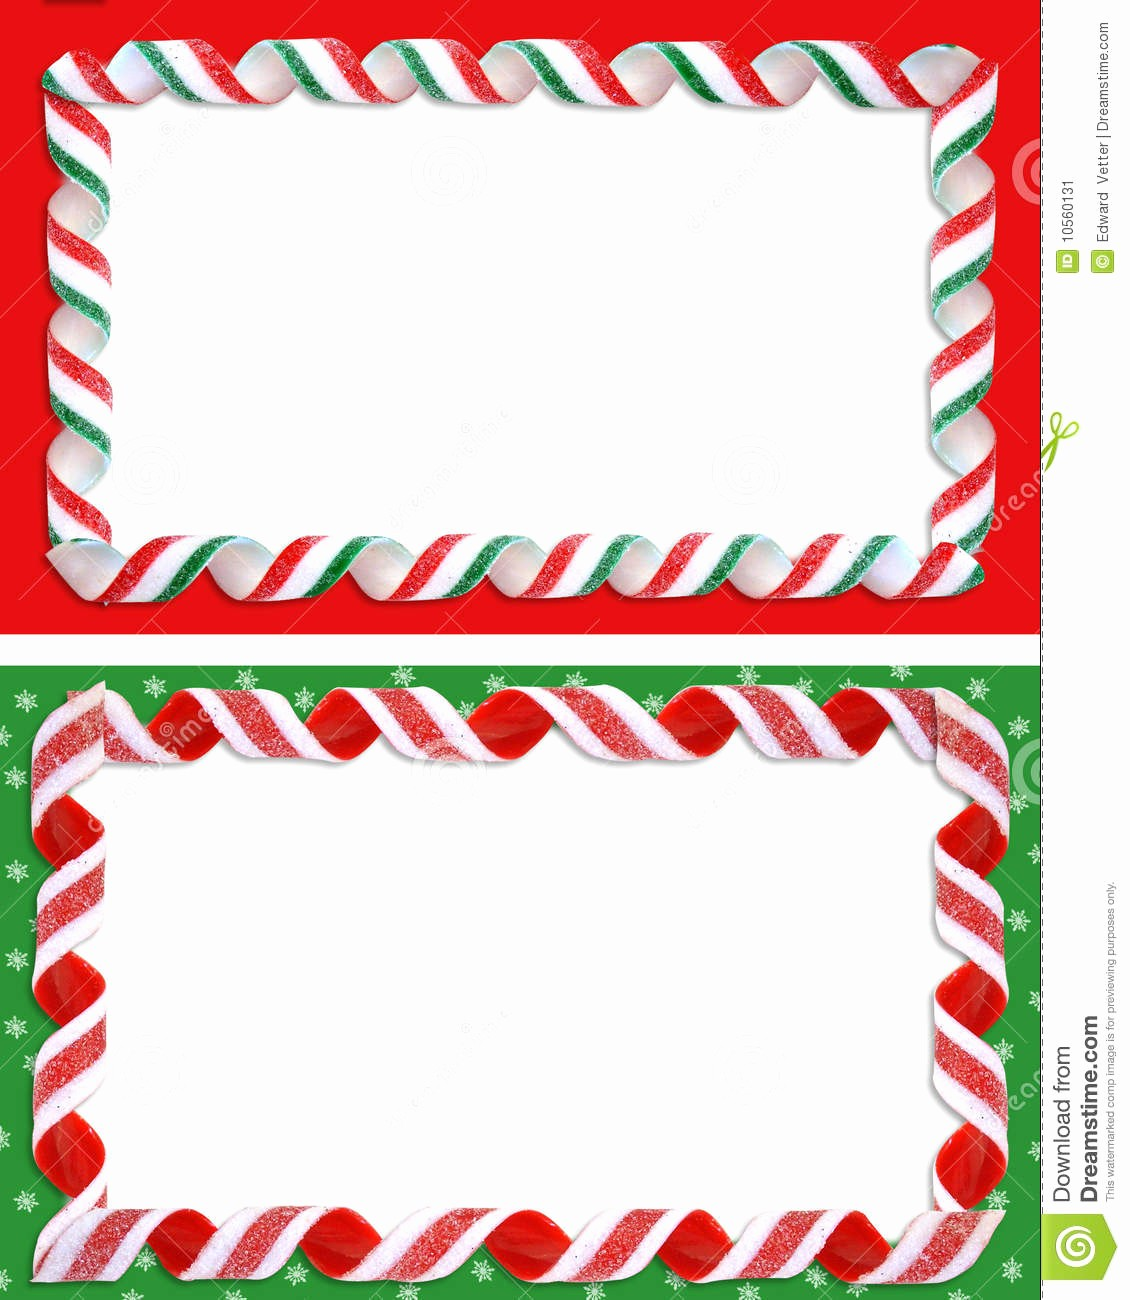 Free Printable Christmas Mailing Labels Elegant Christmas Labels Borders Blank Stock Illustration